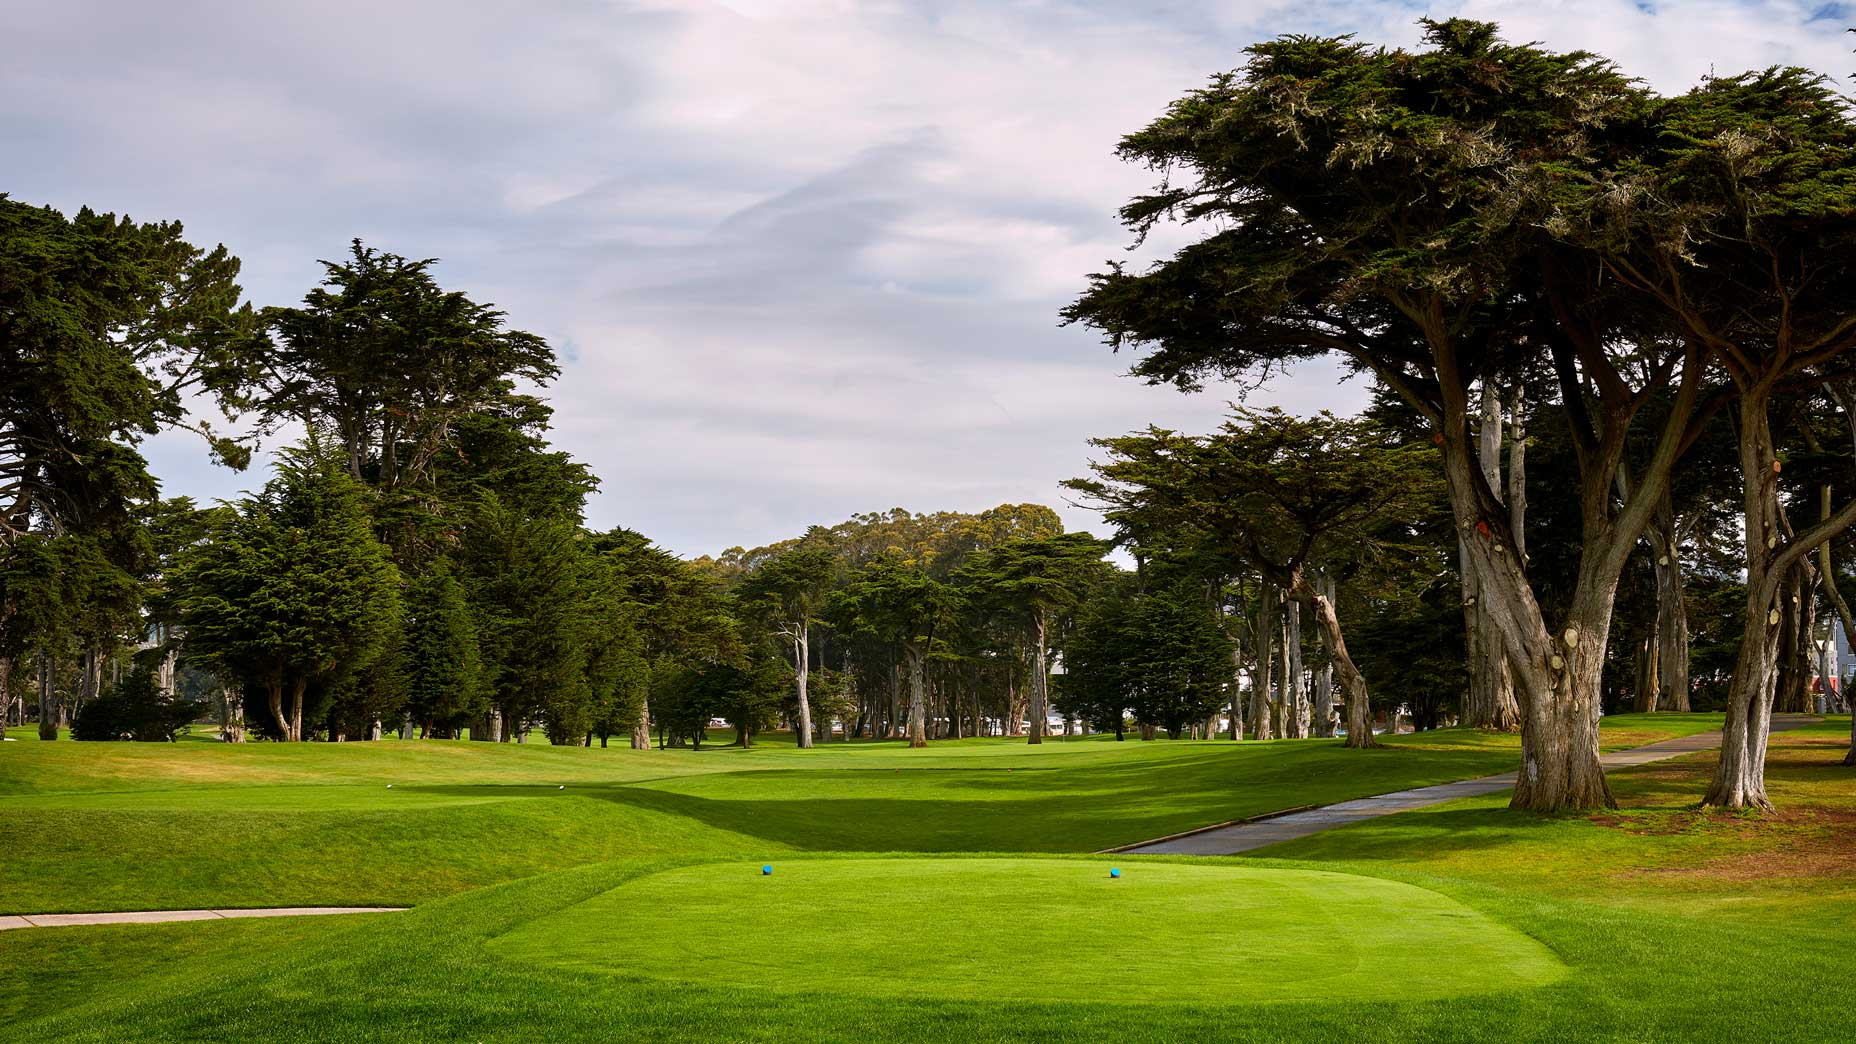 The 607-yard, par-5 4th hole at TPC Harding Park in 2018.